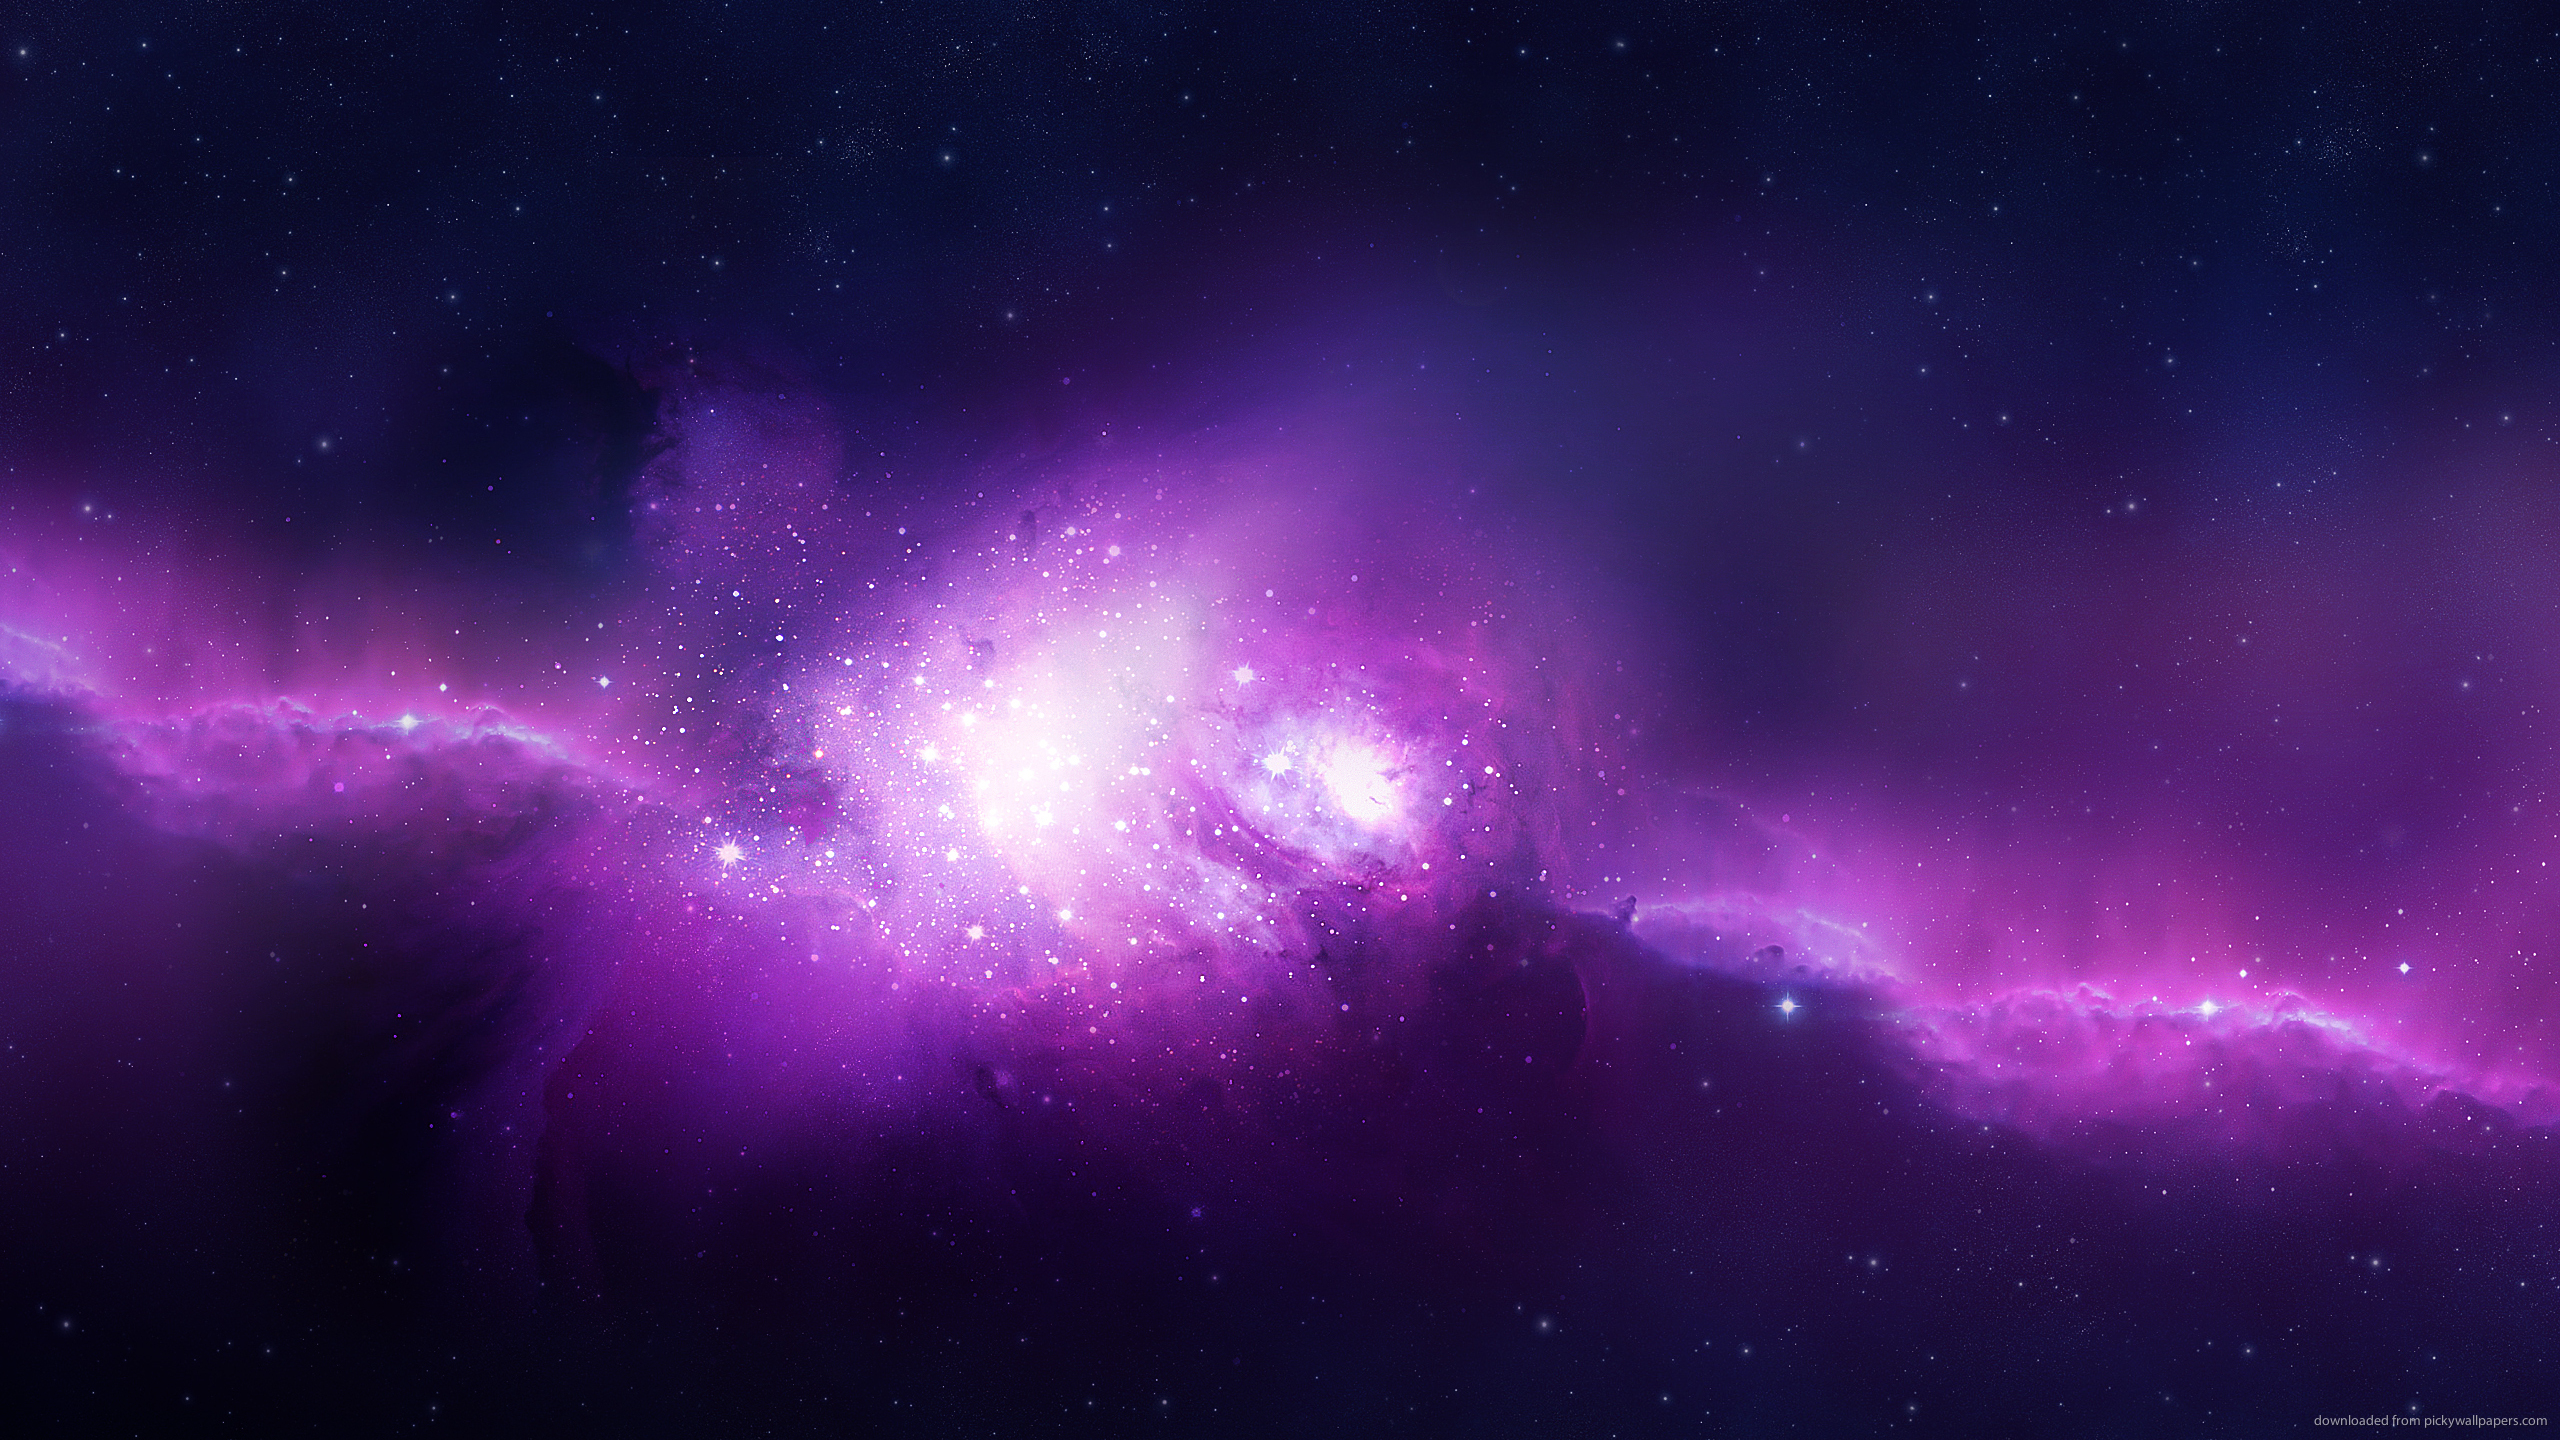 space purple wallpapers wallpaper 2560x1440 2560x1440